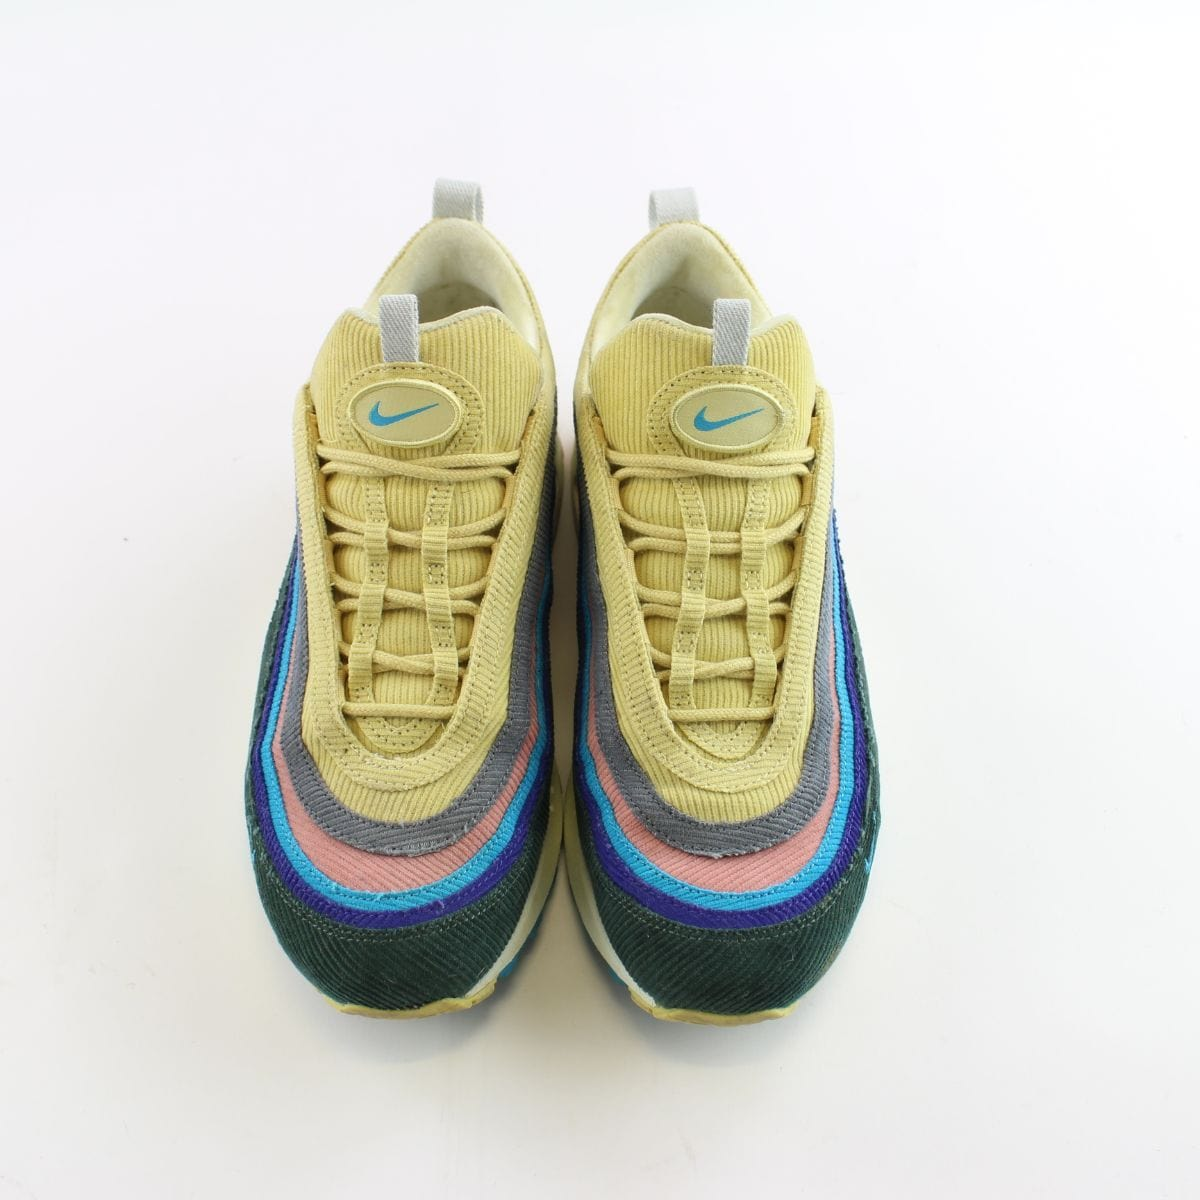 Nike x Sean Wotherspoon AM97?1 - SaruGeneral